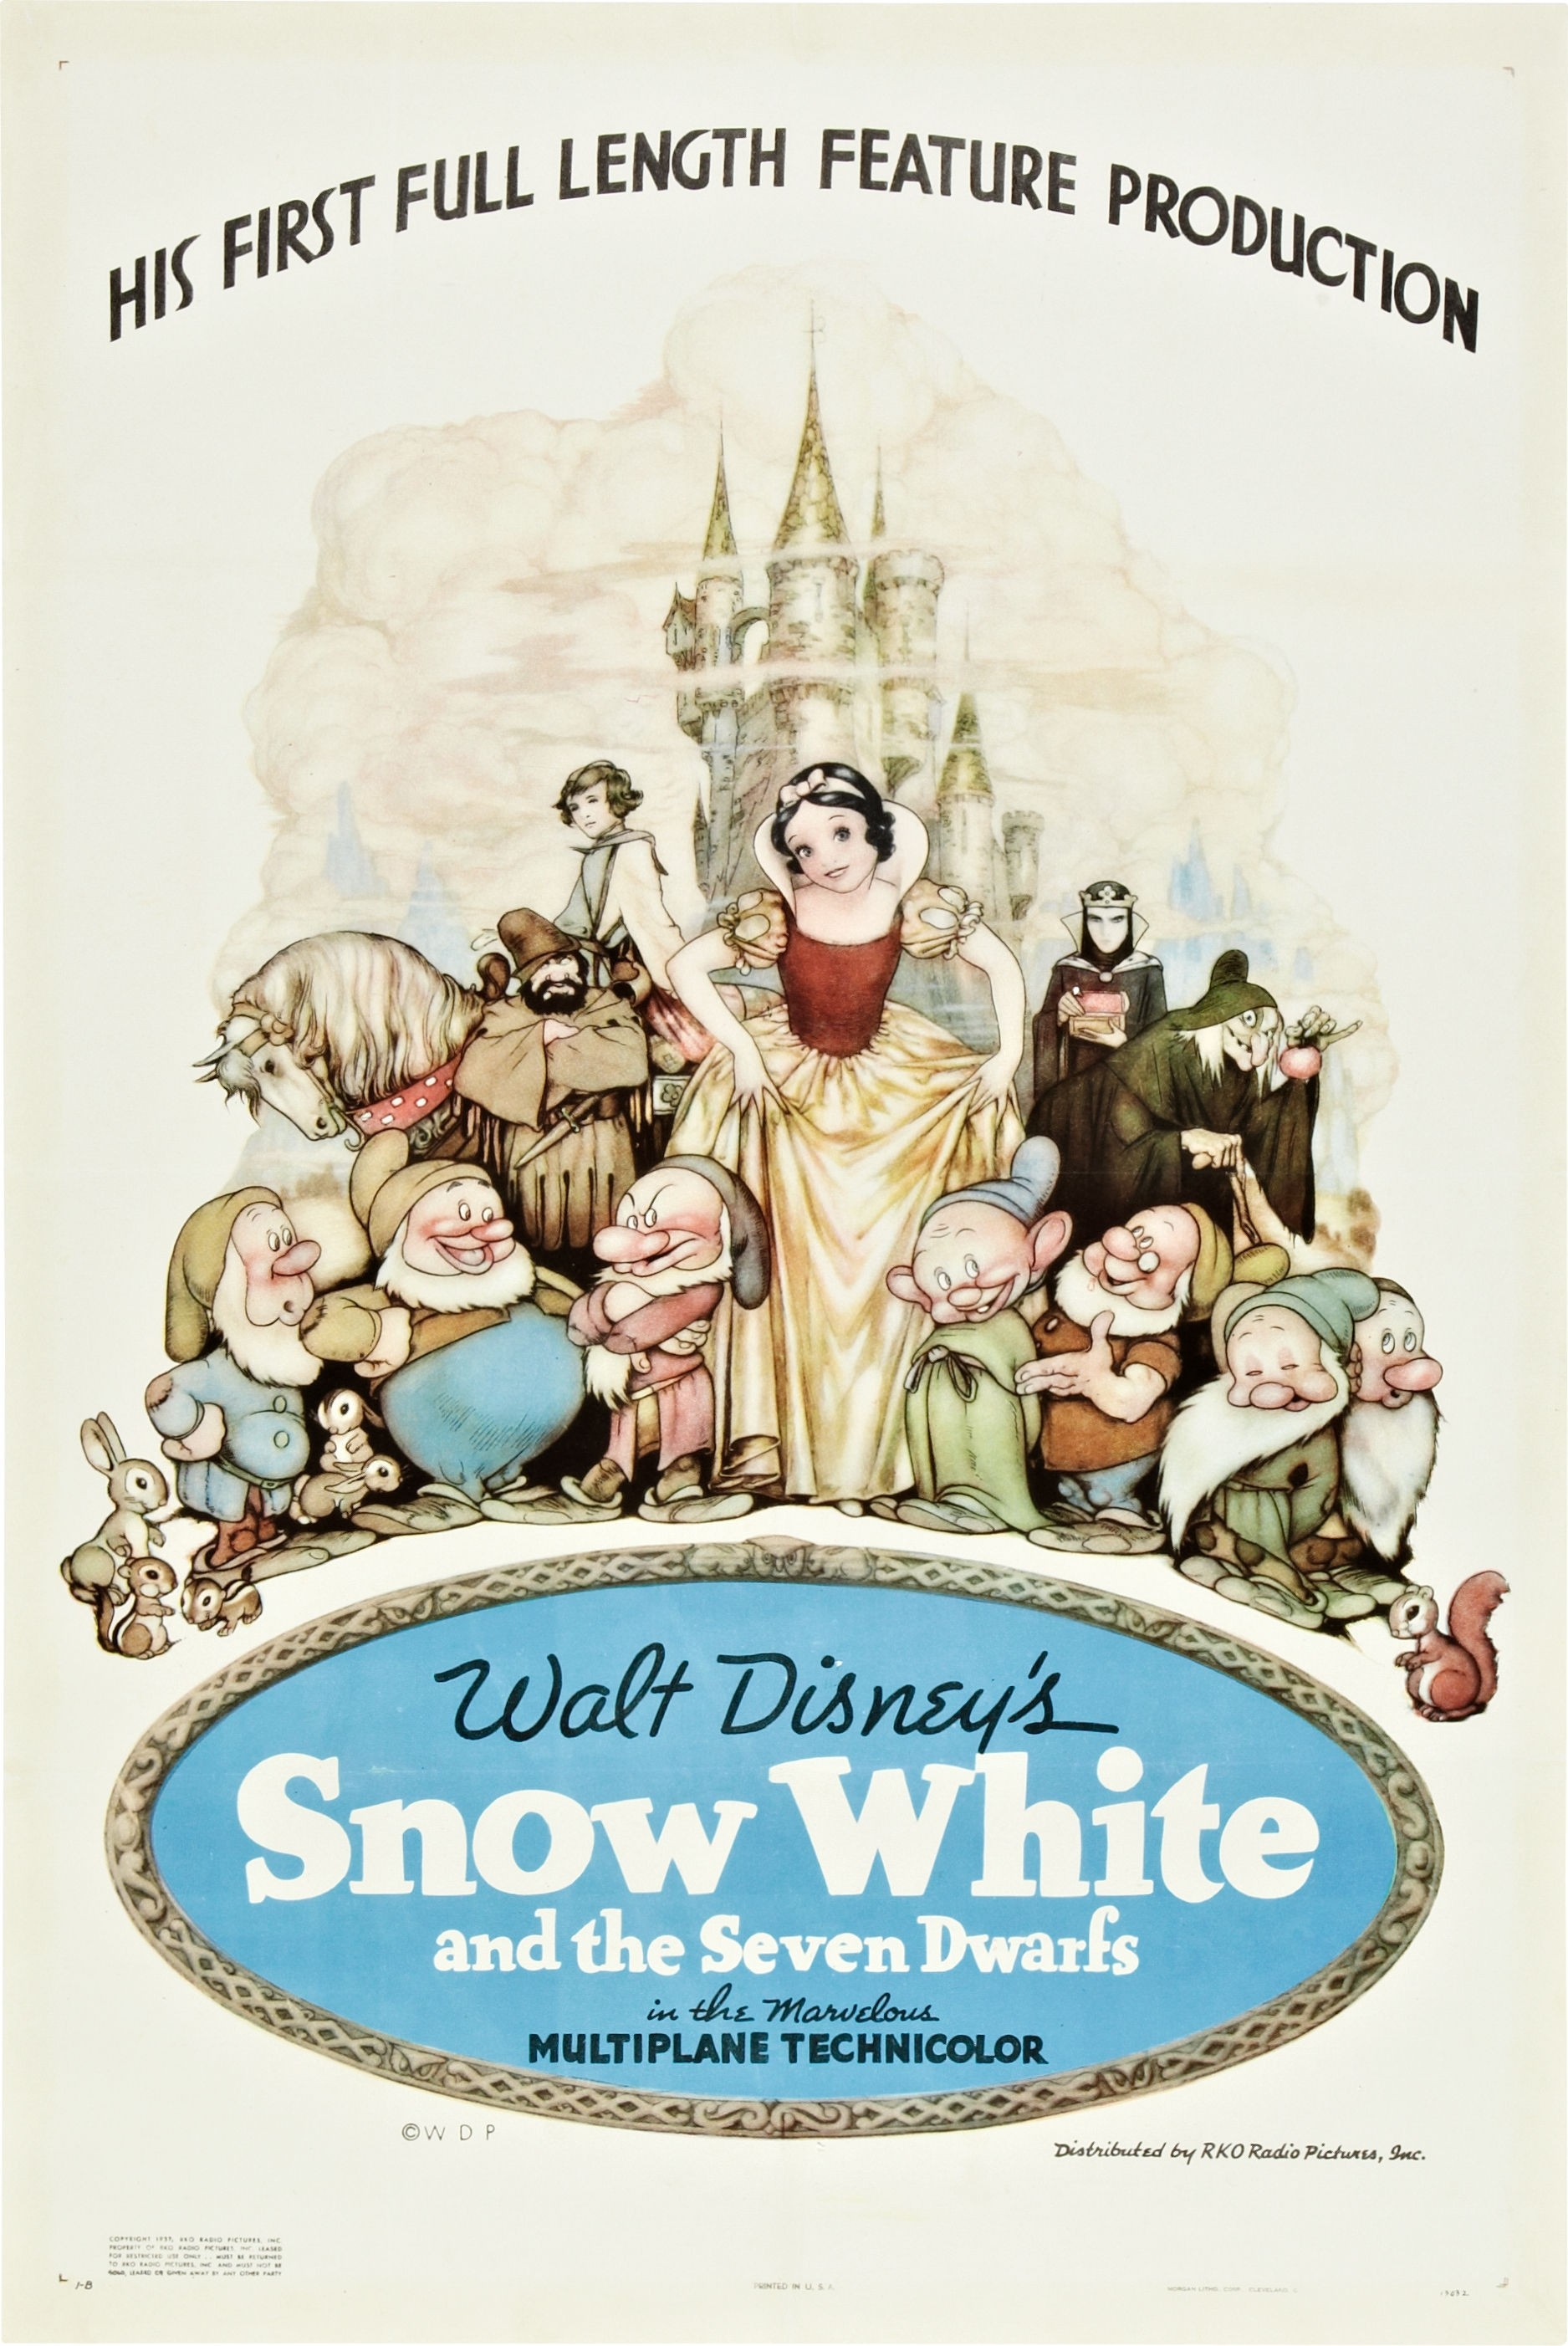 http://vignette4.wikia.nocookie.net/disney/images/4/45/Snow_White_Poster.jpg/revision/latest?cb=20160617160623